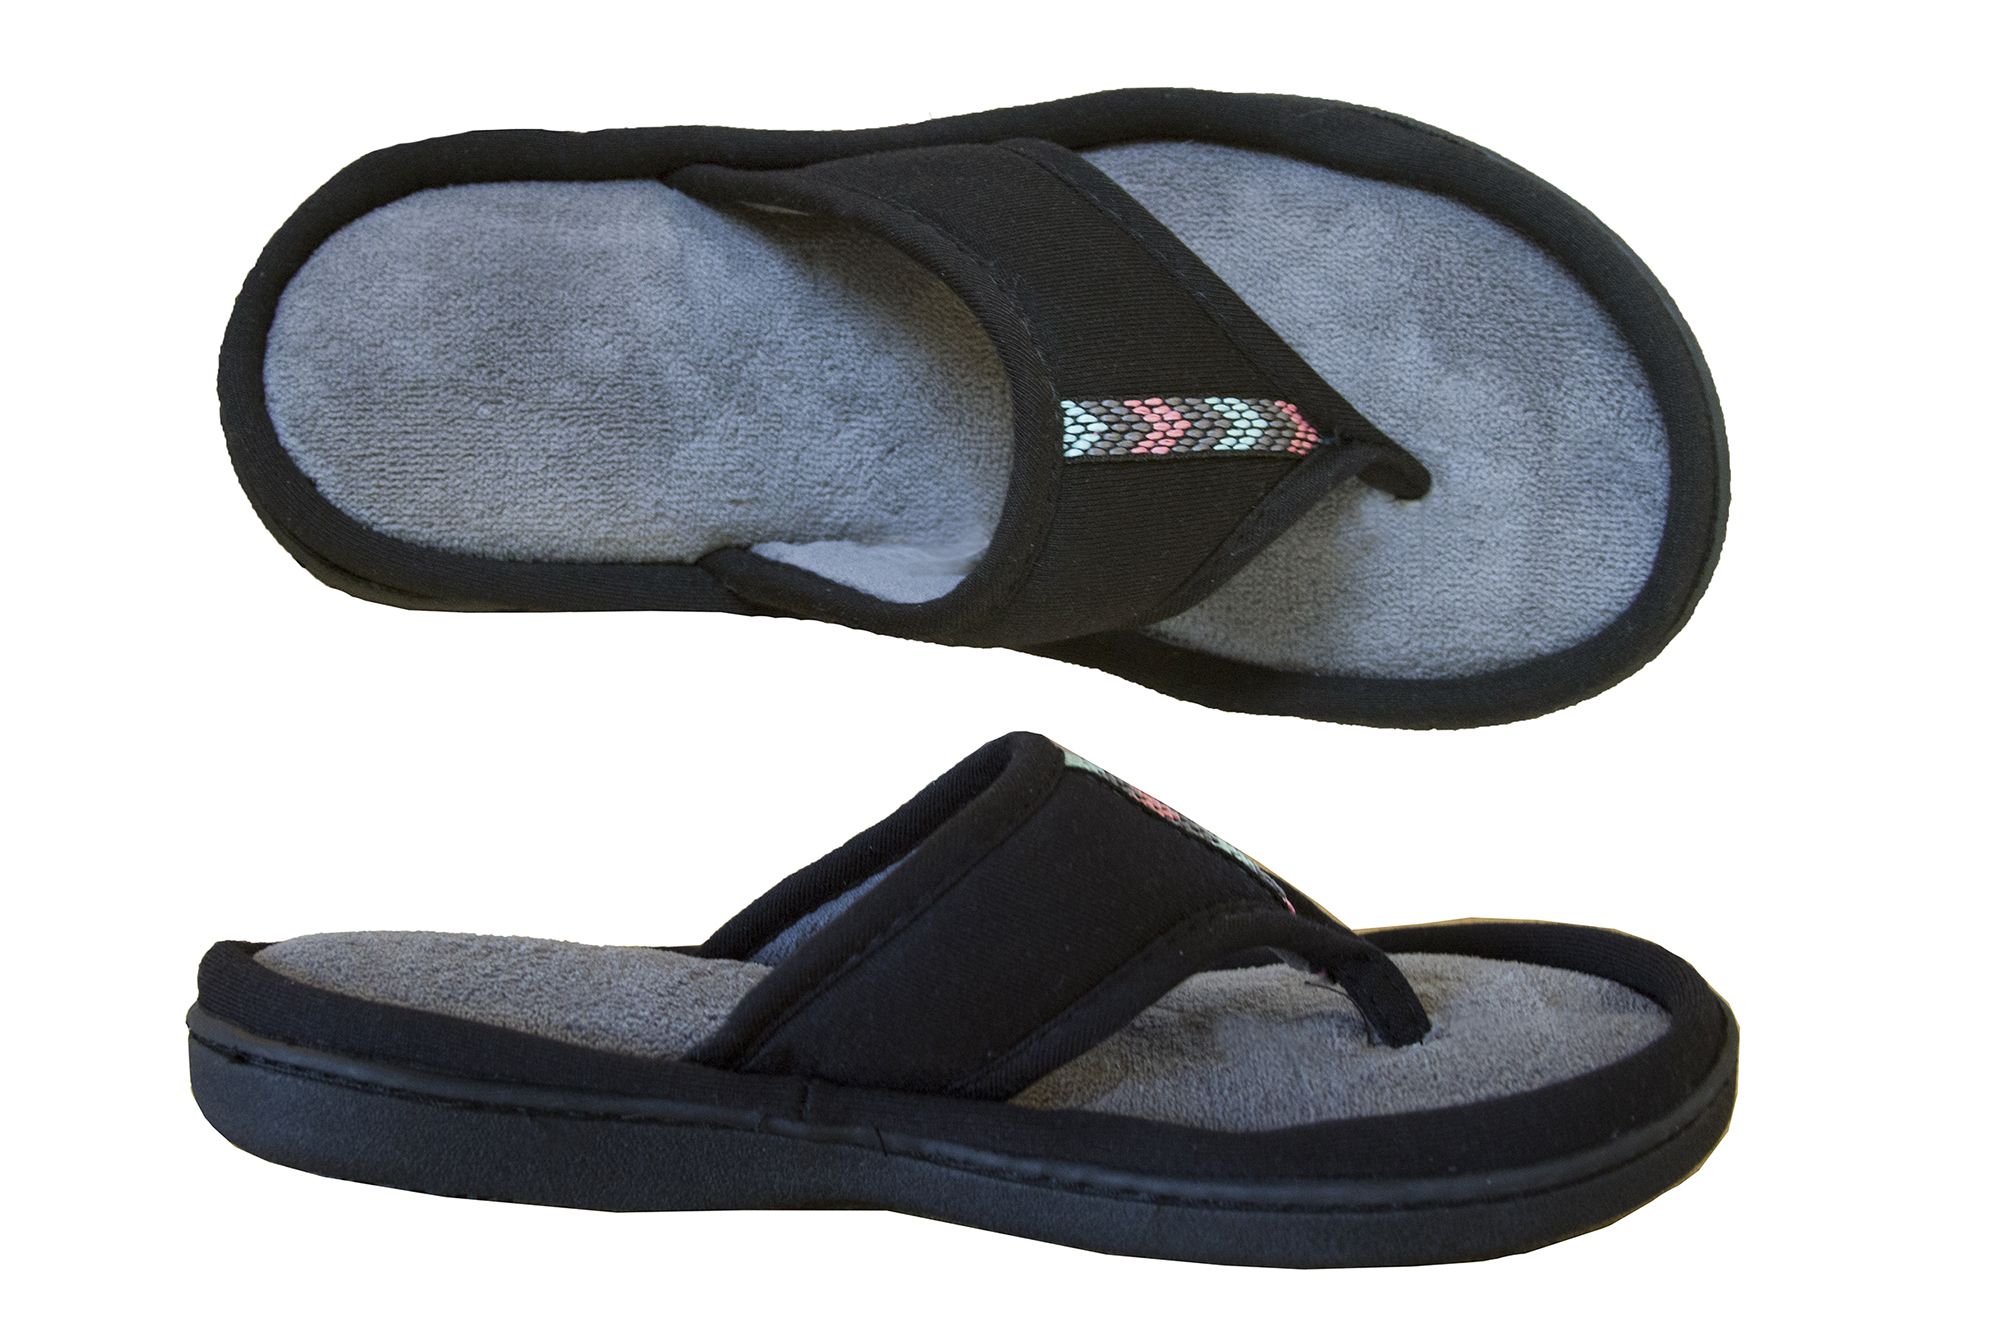 f3a4dc88d6bb Isotoner Women s Microterry Jersey Luna Thong Slipper Black 8.5-9